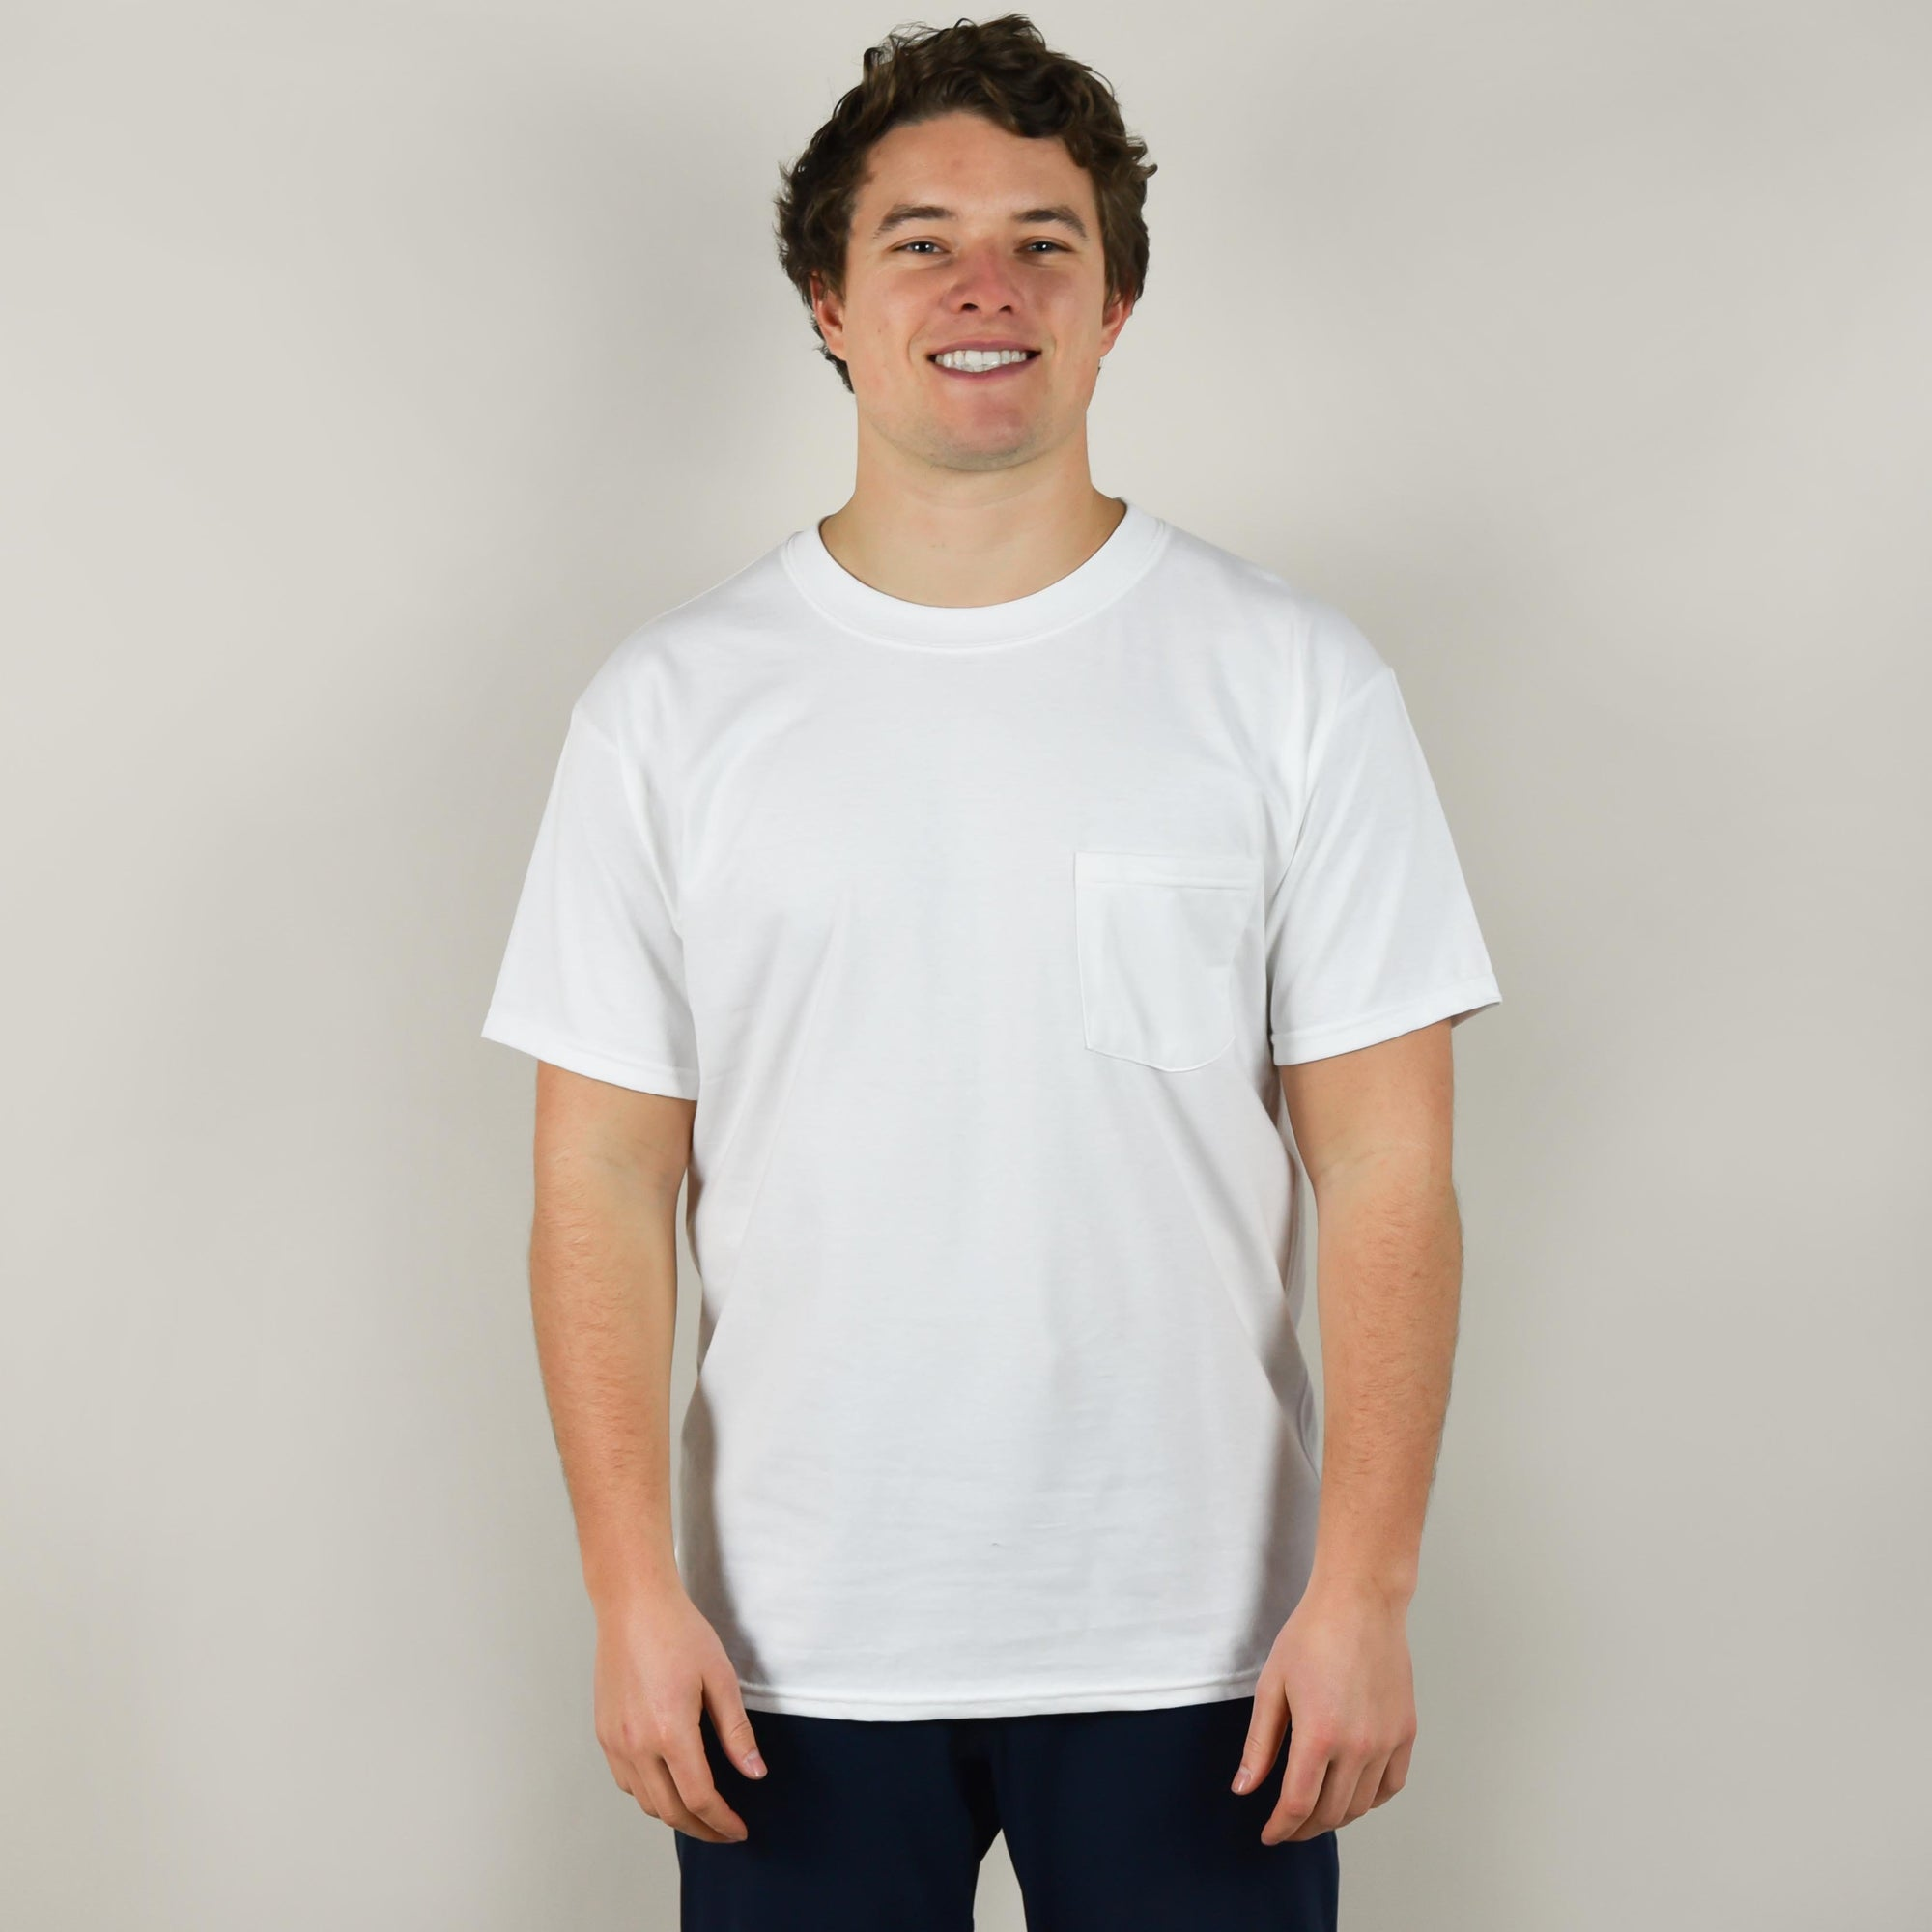 Model wearing Hanes 5190P Beefy Tee with Pocket